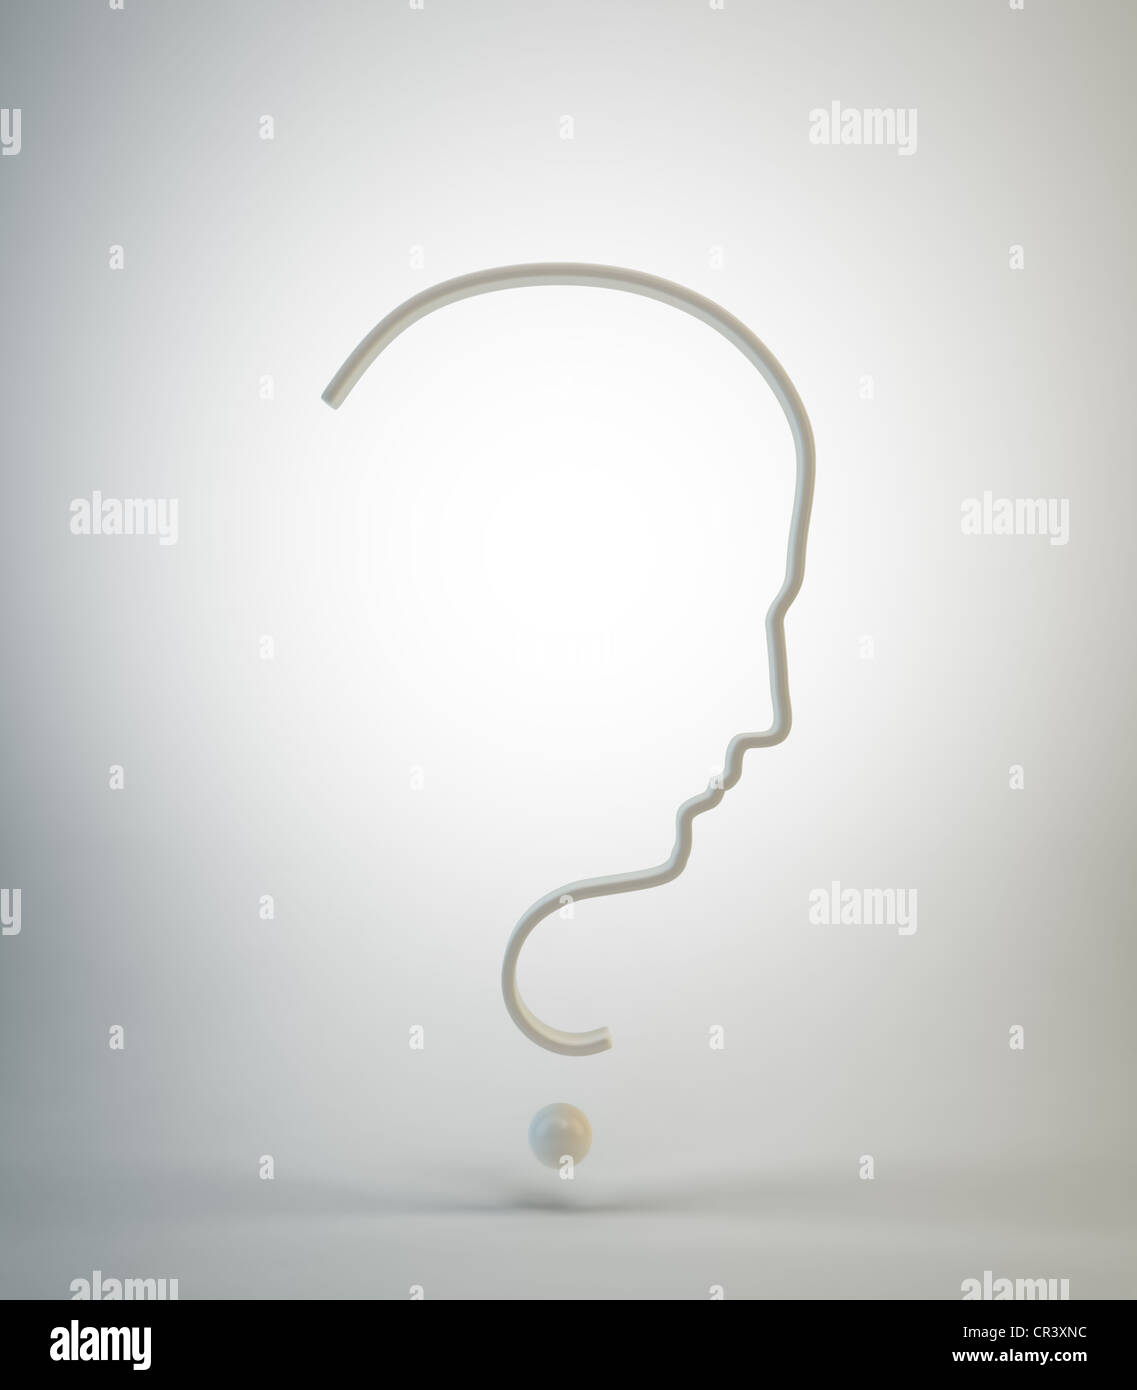 Question mark with a men's face silhouette - Stock Image